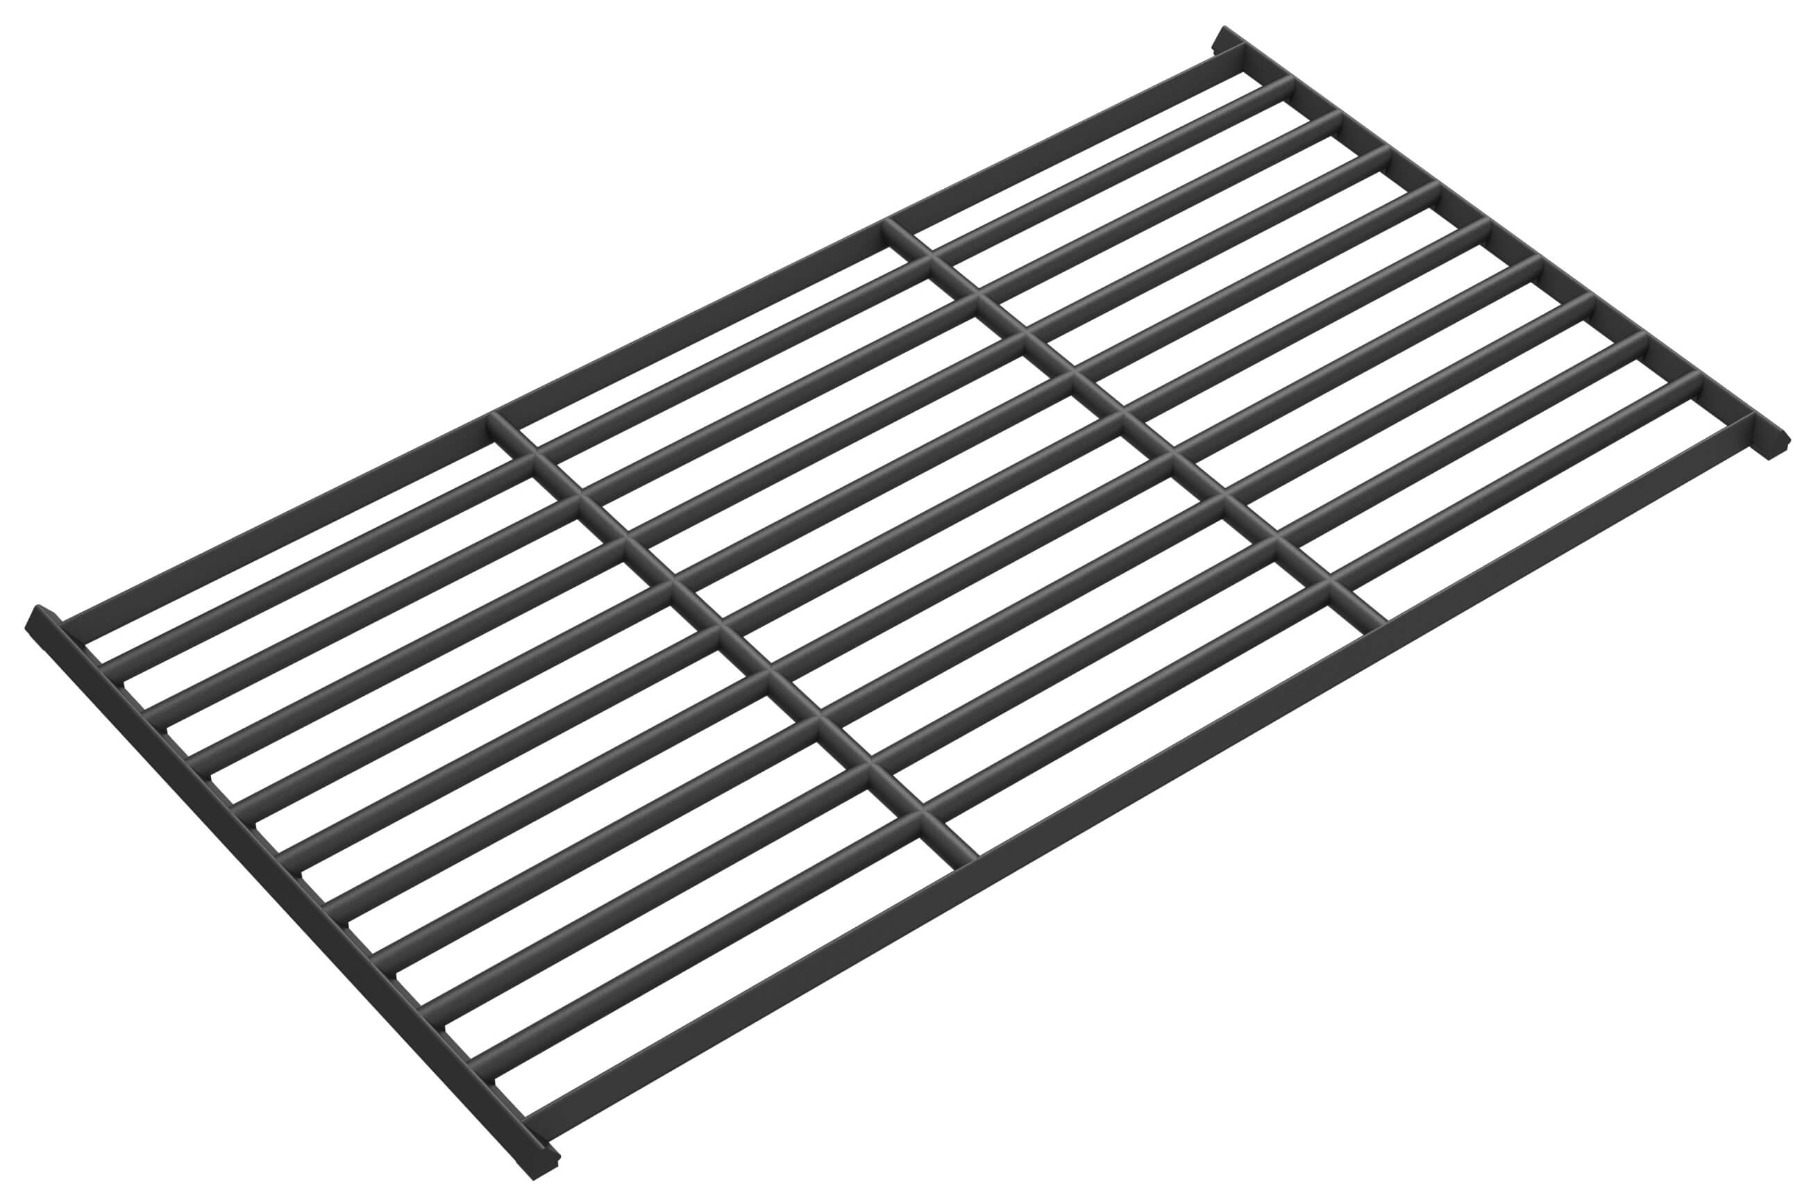 V SHAPED COOKING GRID 270 X 410 MM